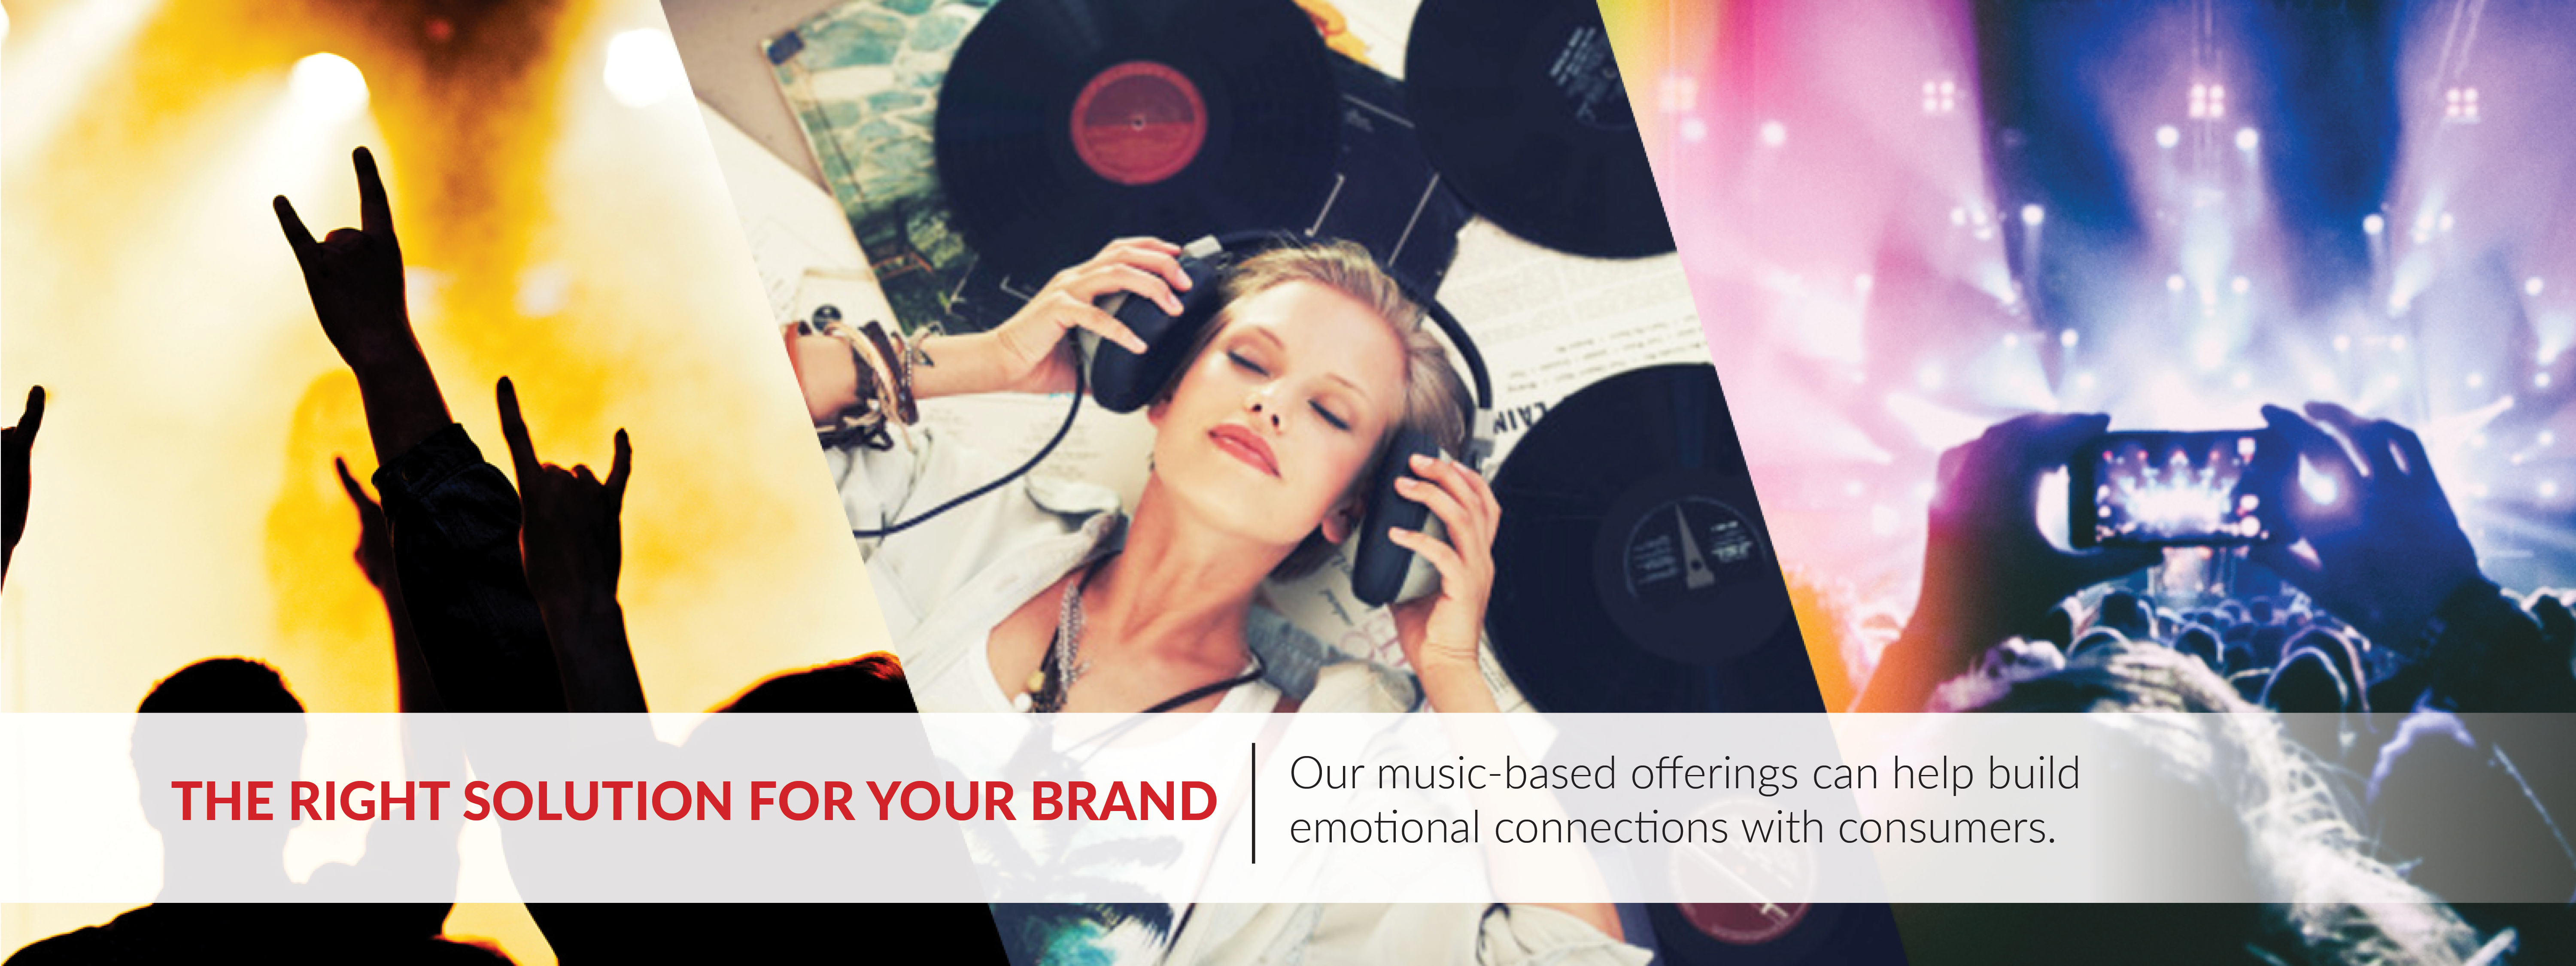 The Right Solution For Your Brand